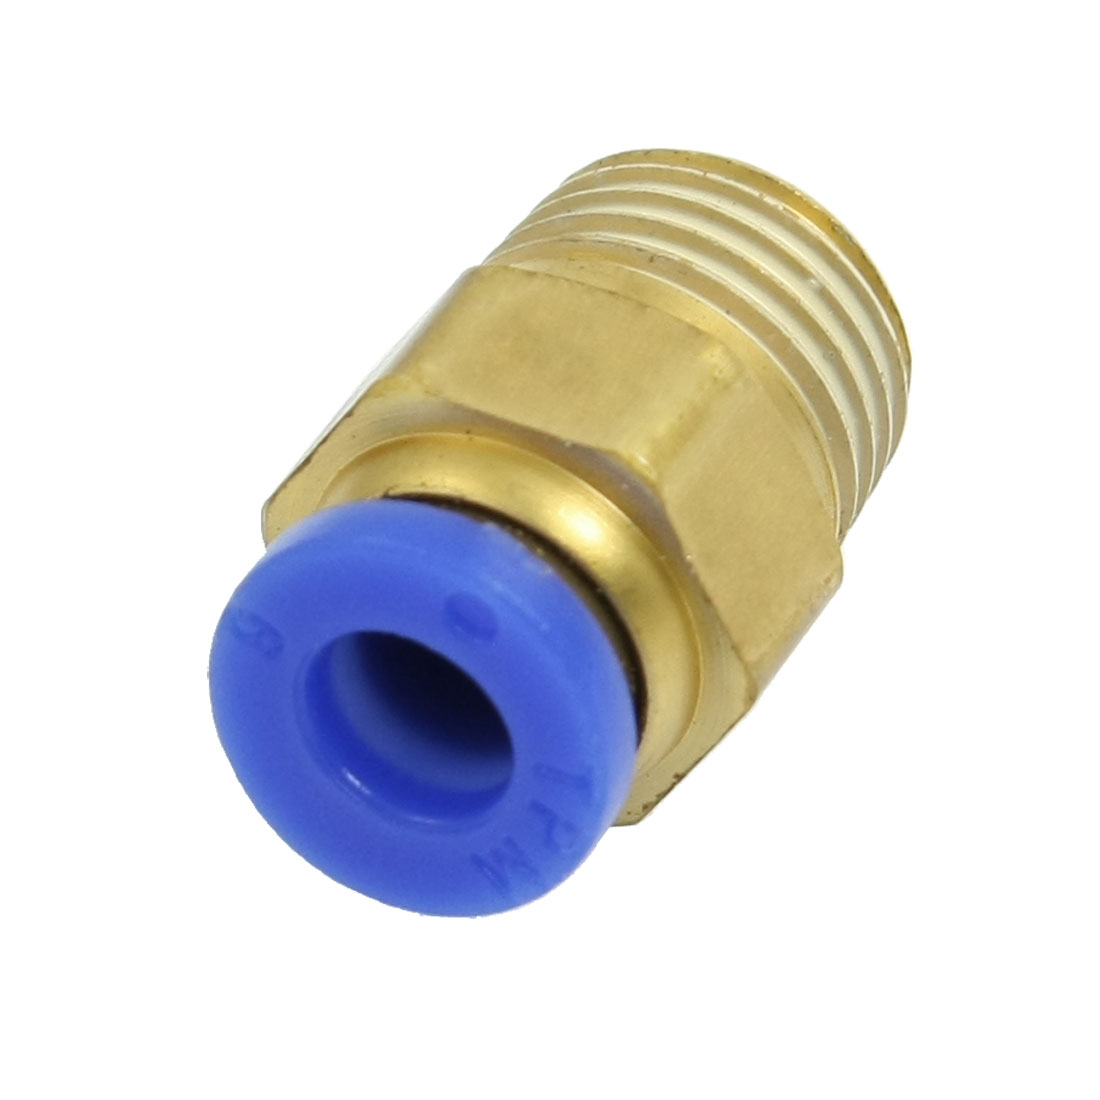 13mm Male Thread 6mm Push in Joint Air Pneumatic Connector Quick Fitting